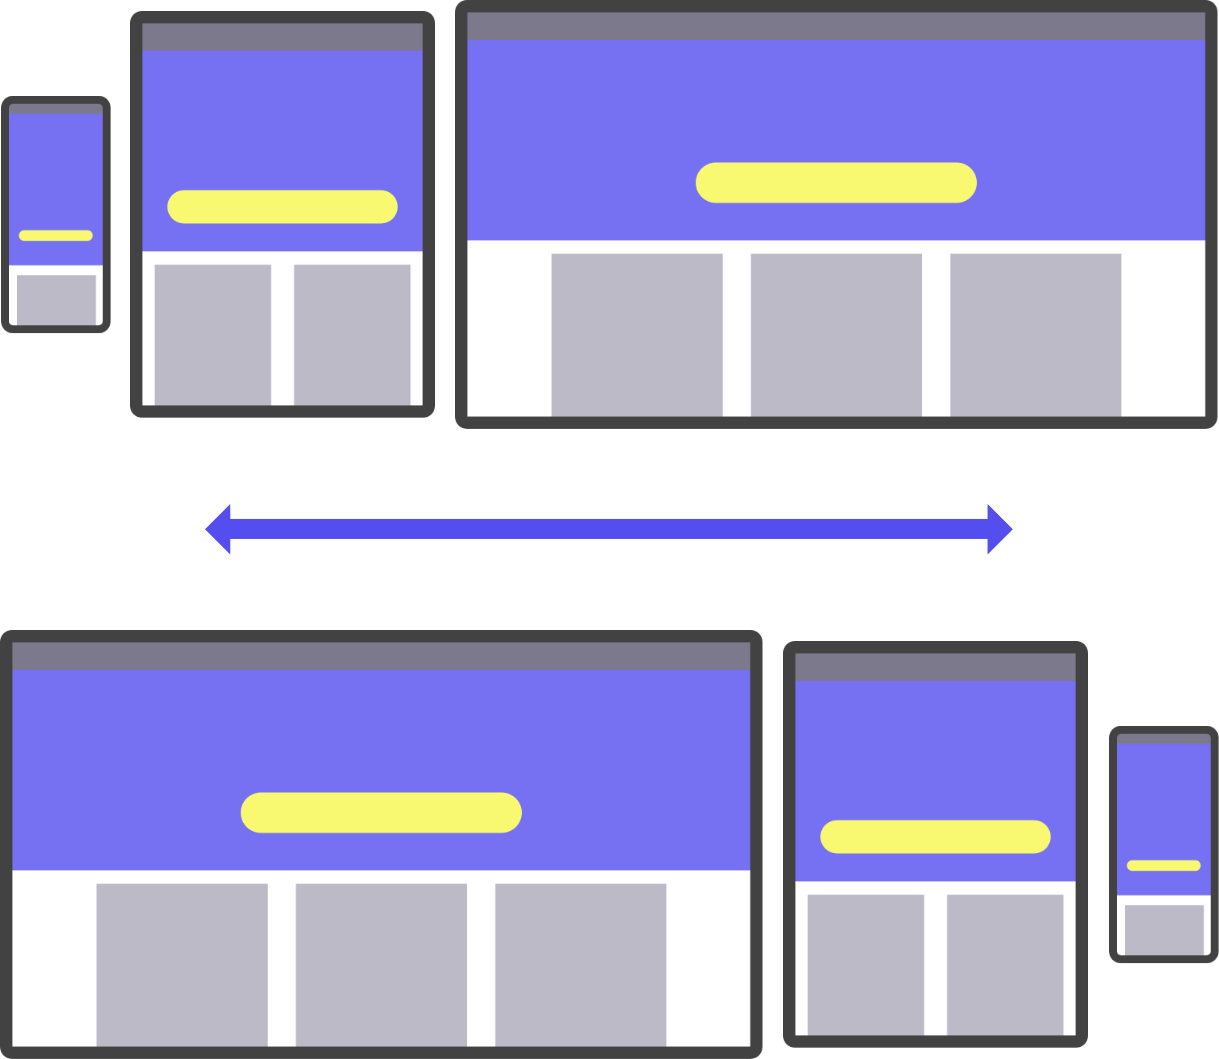 Image of mobile first and mobile responsive design.